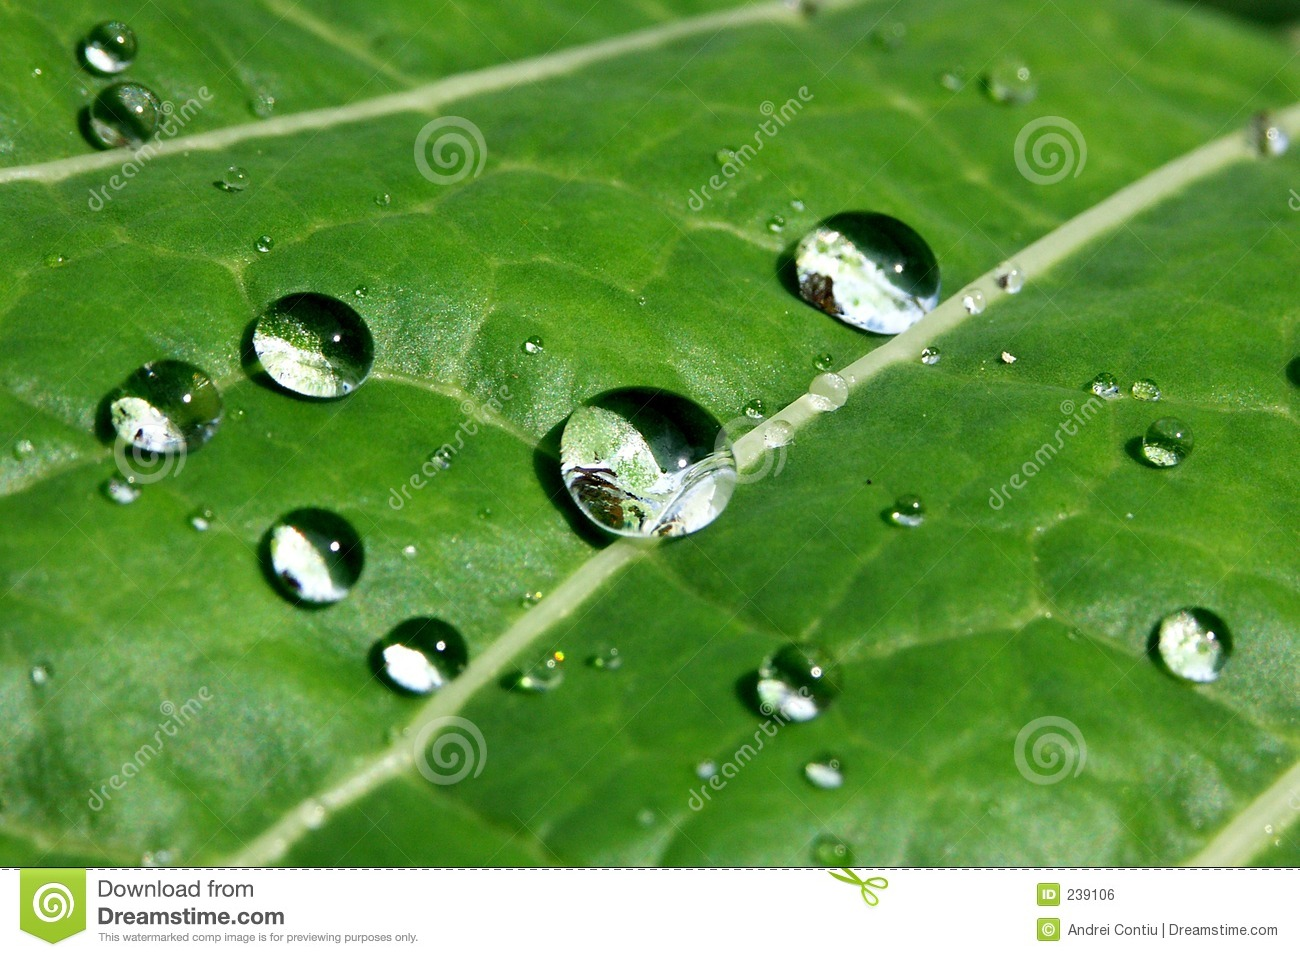 Leafwaterdrops